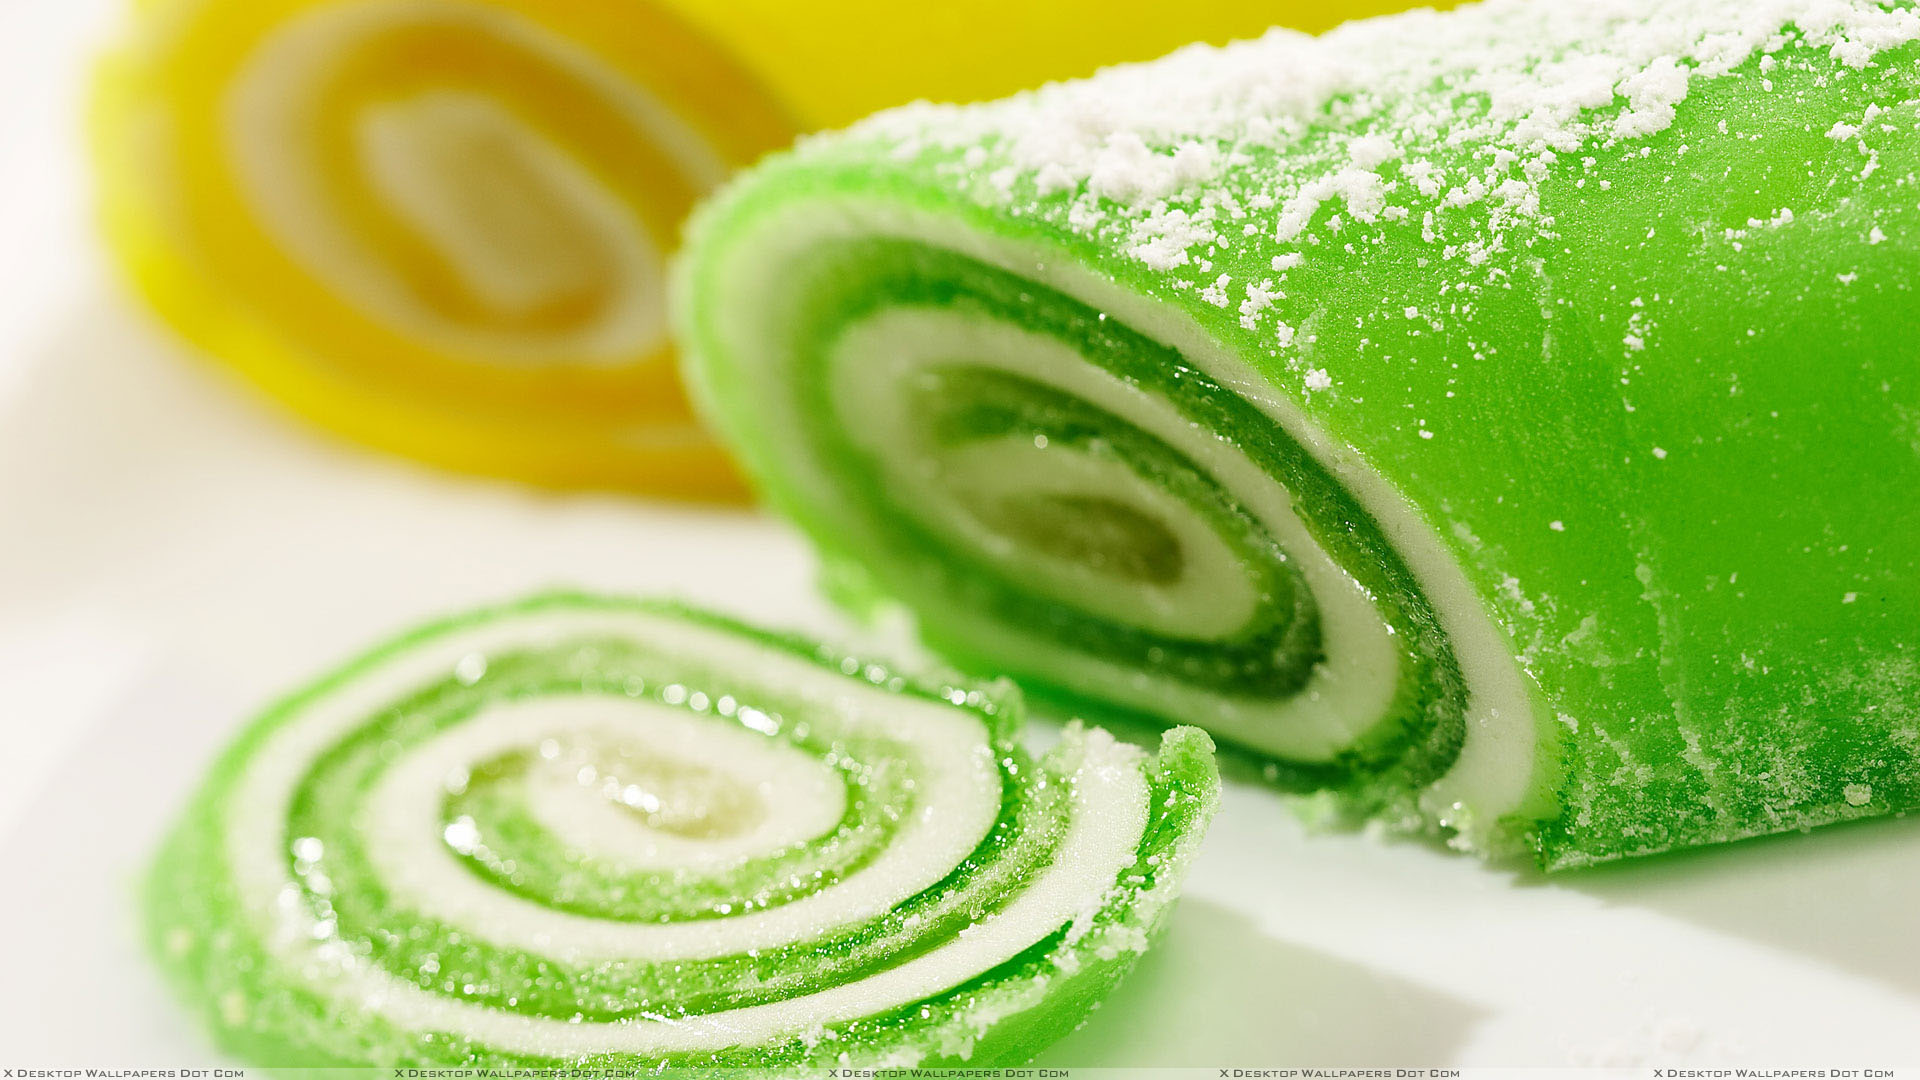 green and yellow sweet candy hd wallpaper wallpapers55com   Best 1920x1080